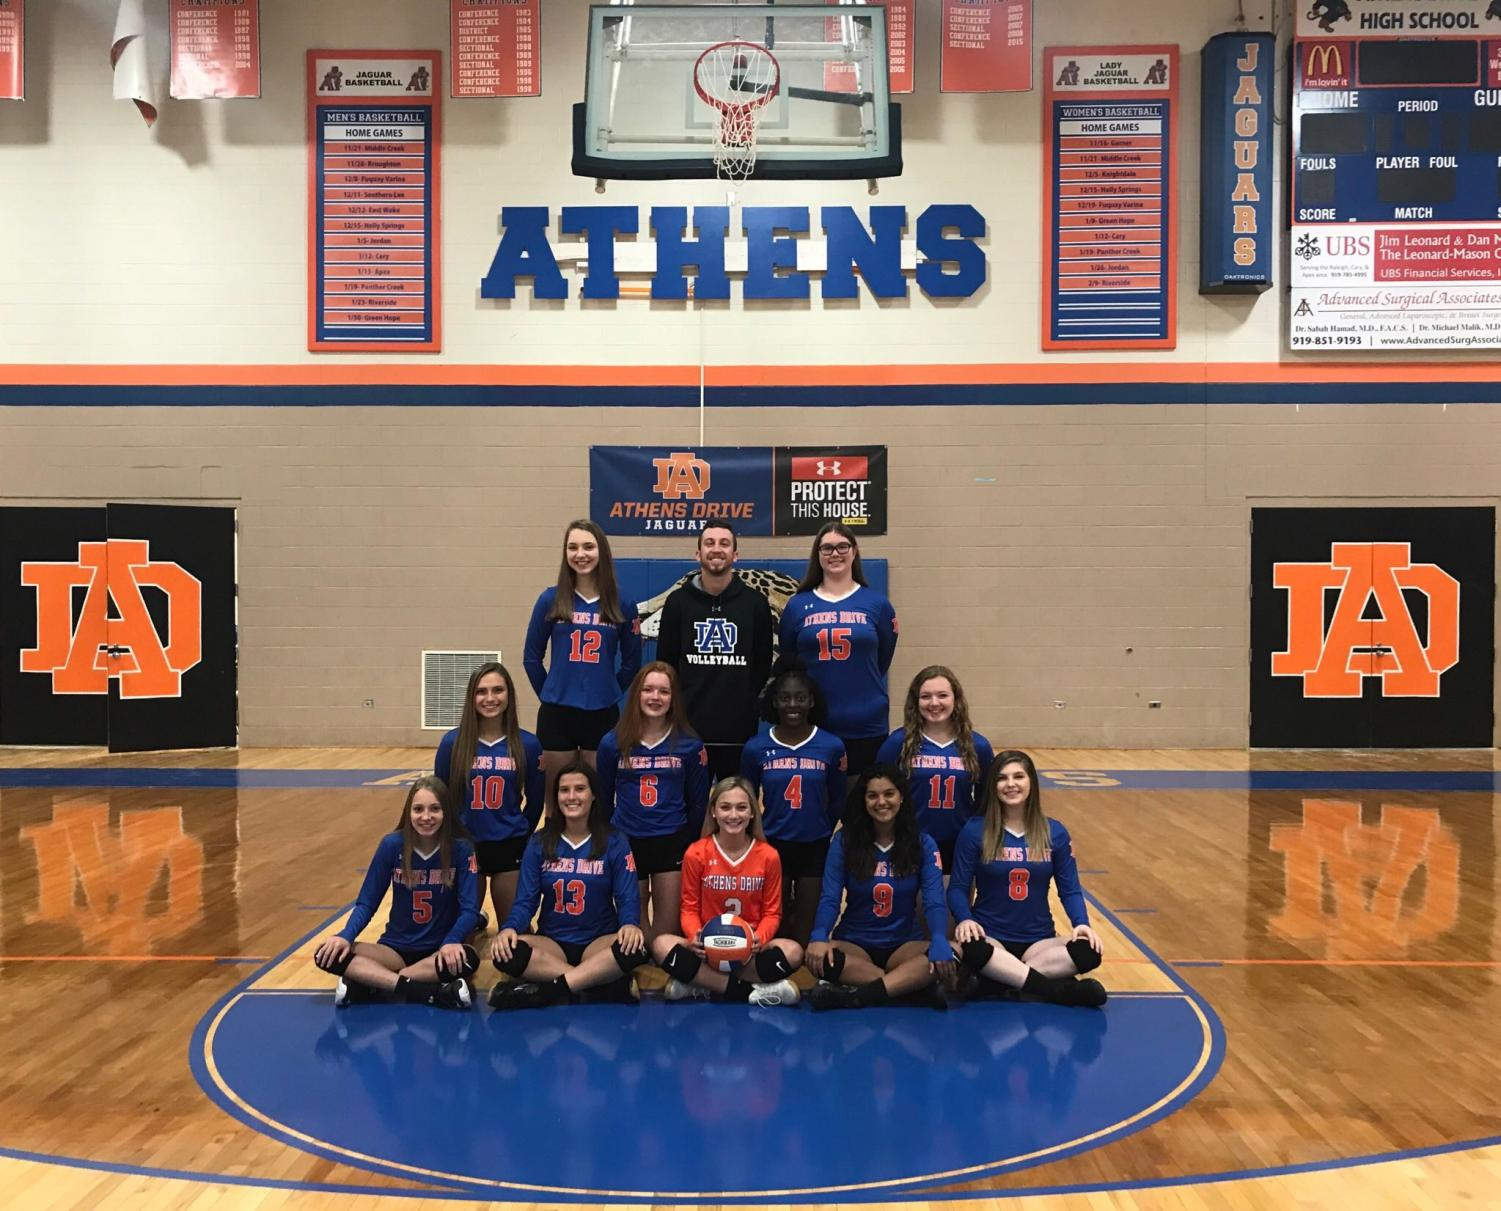 Athens Drive volleyball team poses for a team picture.